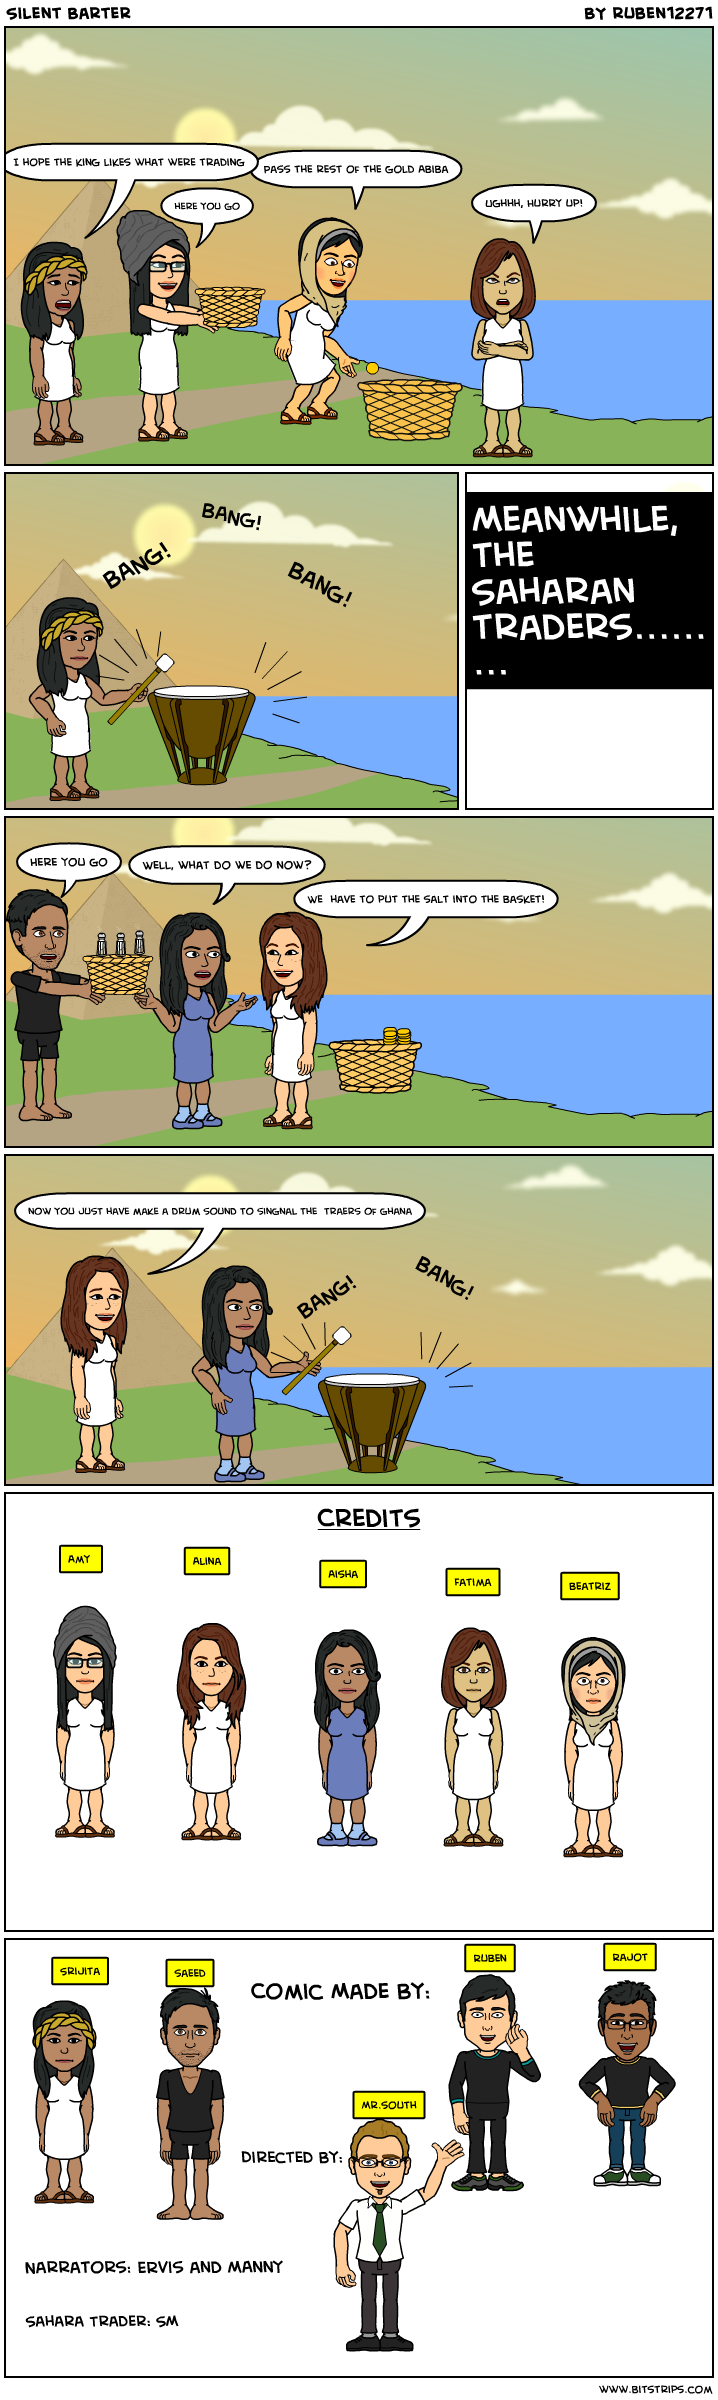 silent barter bitstrips. Black Bedroom Furniture Sets. Home Design Ideas